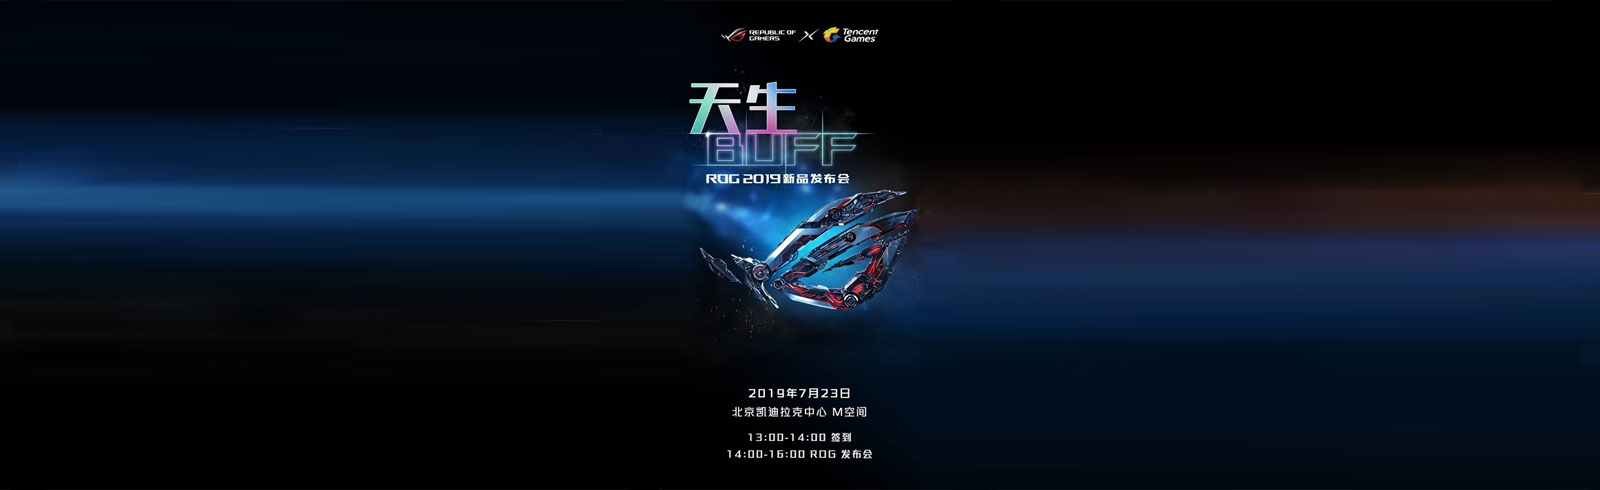 The ROG Phone 2 might be unveiled on July 23rd